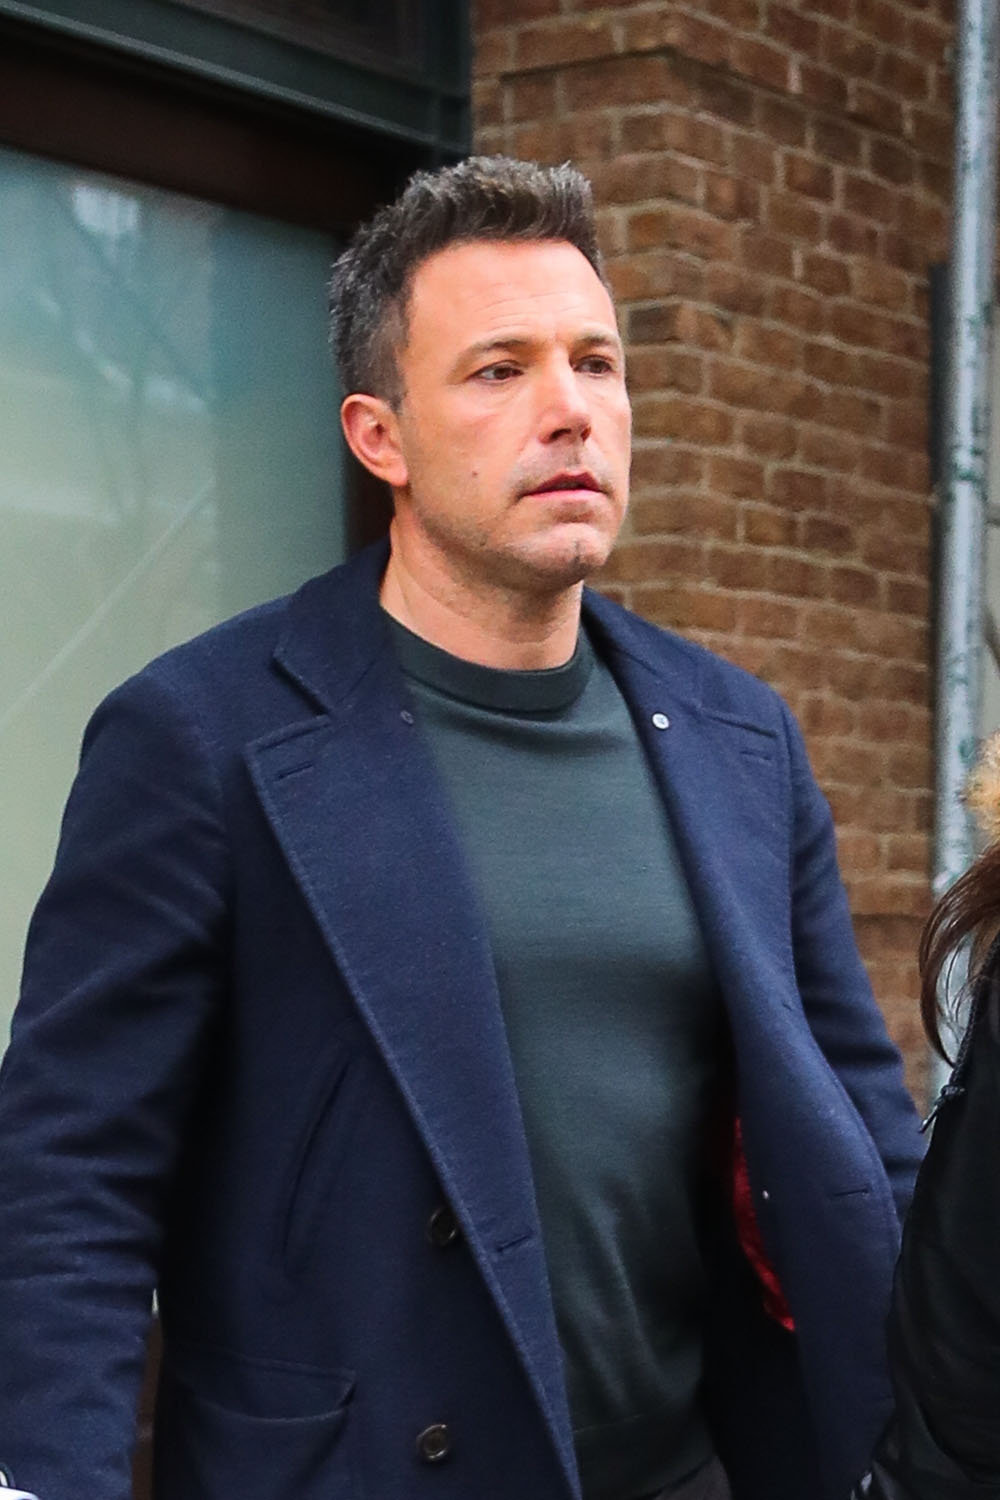 Ben Affleck signs for a few fans leaving The Greenwich Hotel in NYC